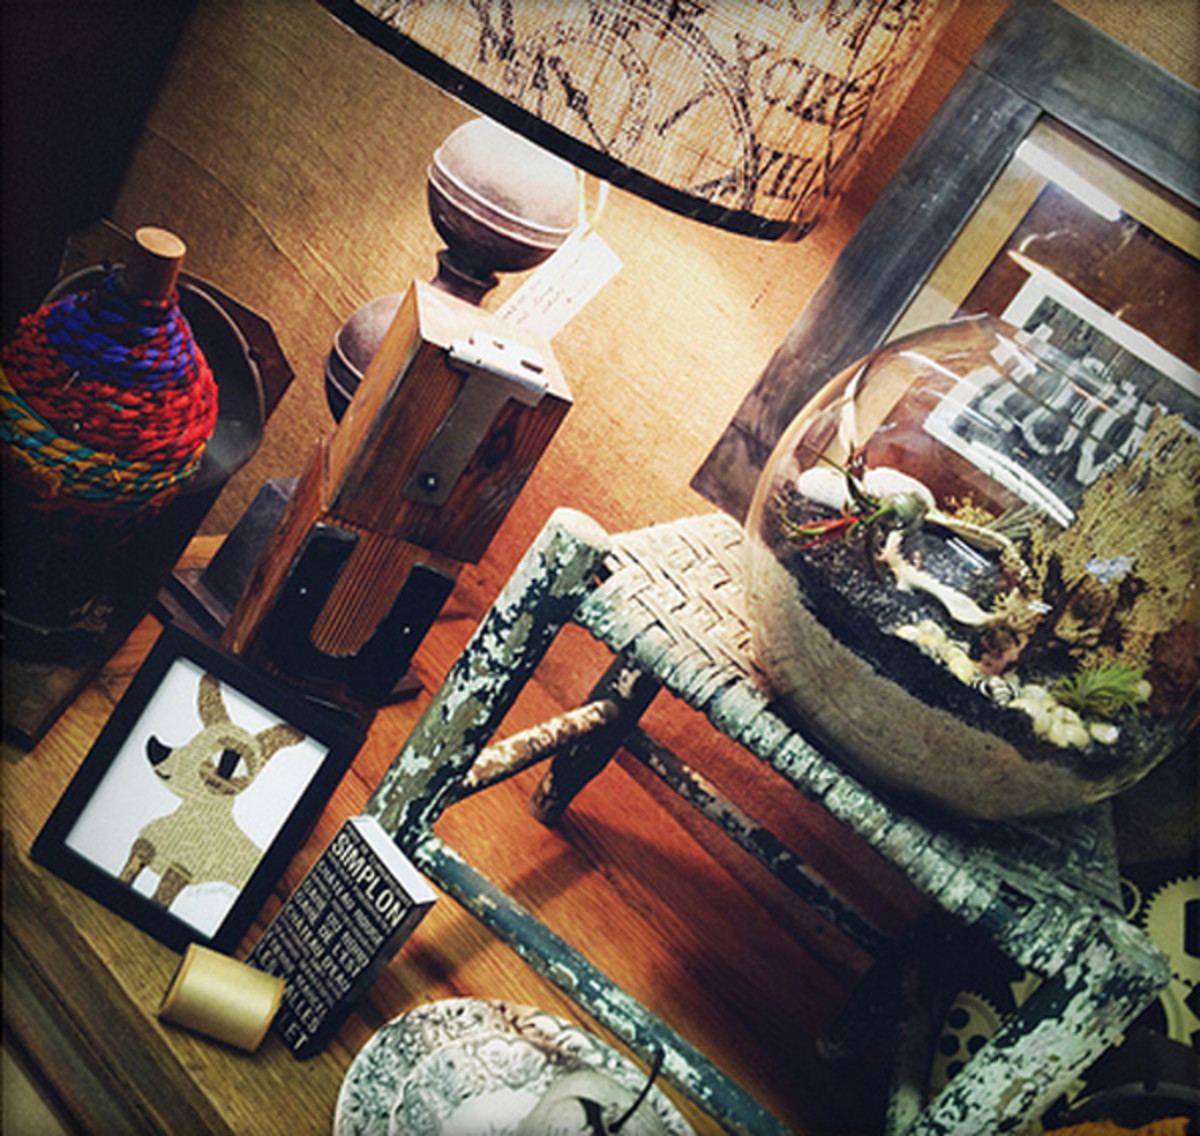 Decide which direction you want your rustic interior to take and have fun accessorizing.